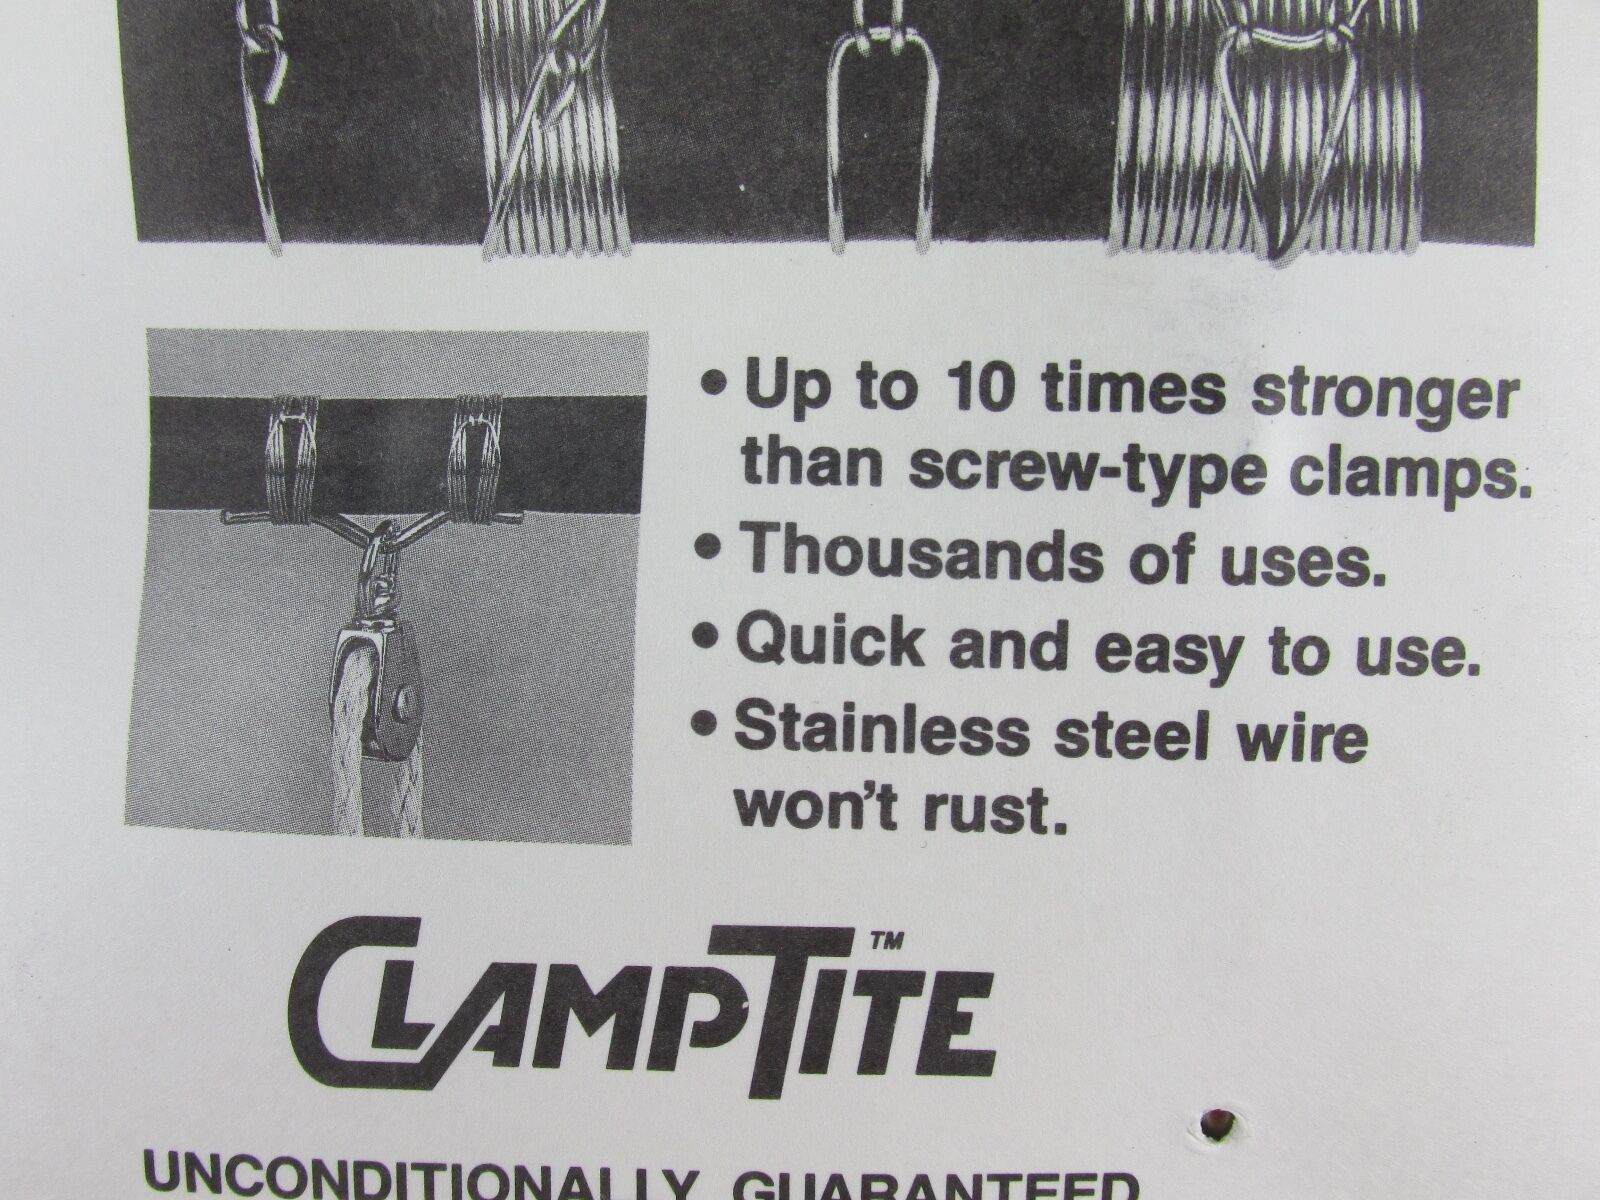 CLAMPTITE Tool CLT03 Stainless Steel/Aluminum Clamping Clamp Making Tool USA